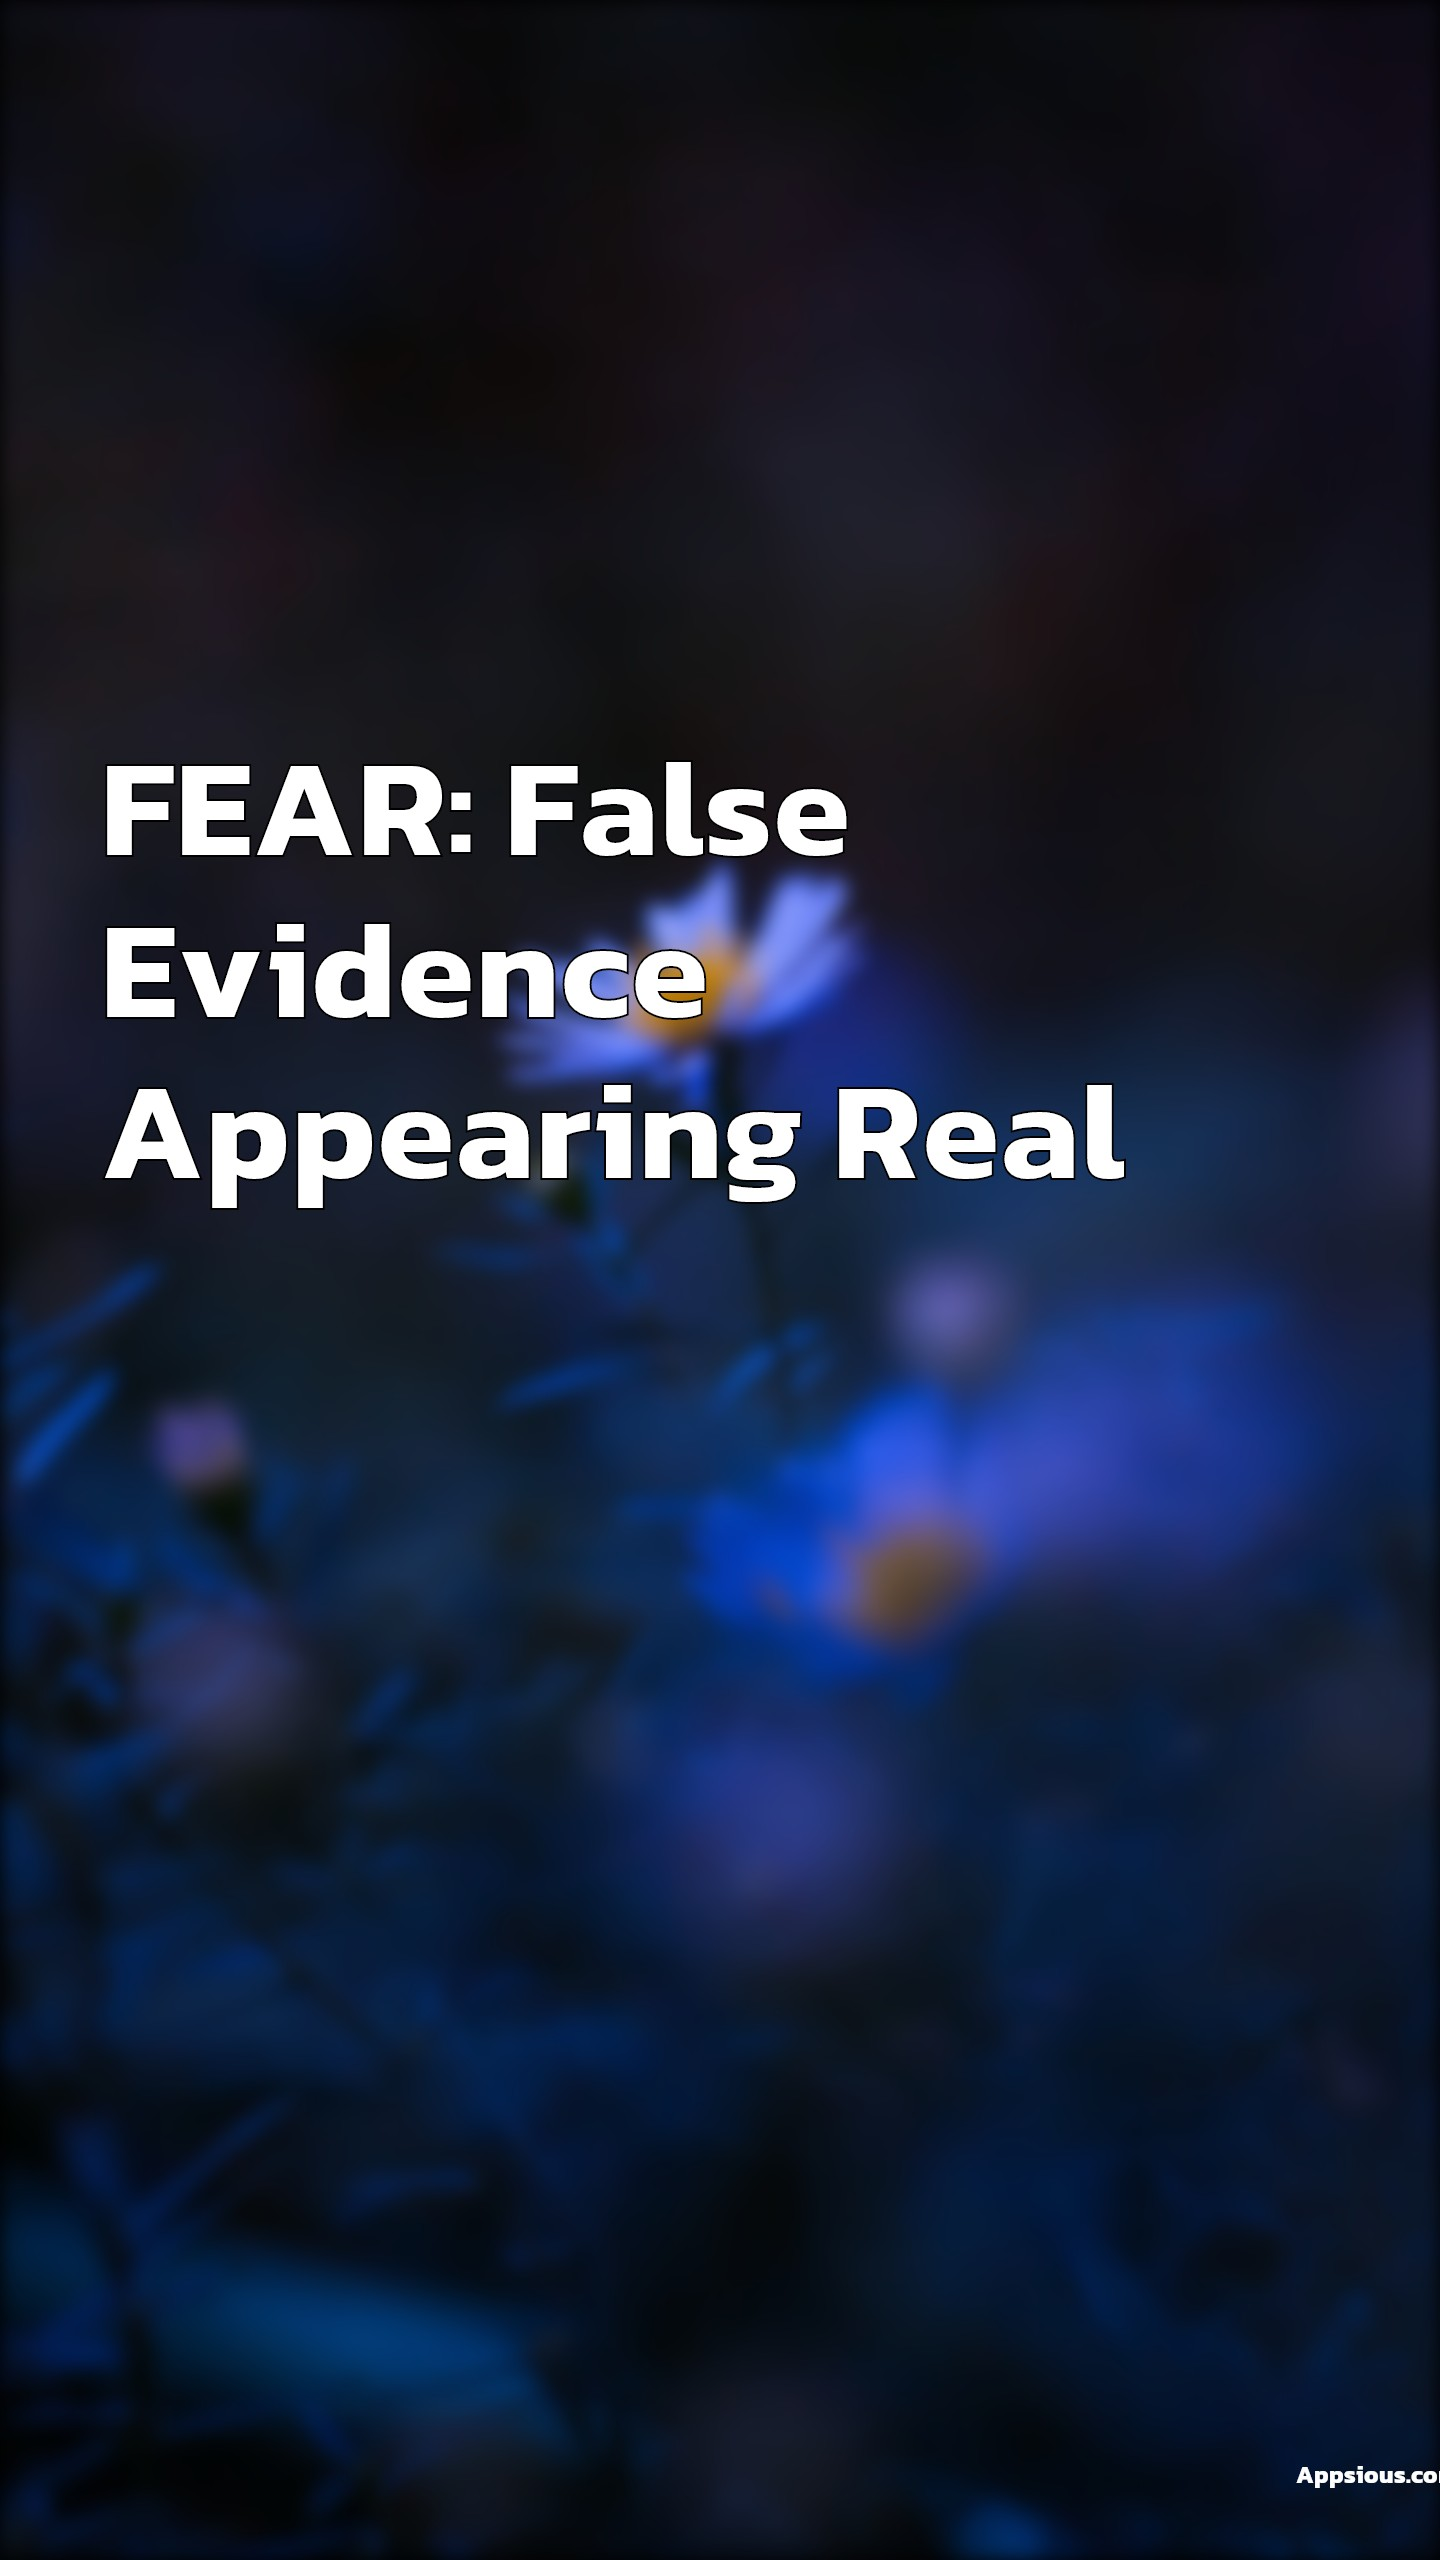 FEAR: False Evidence Appearing Real